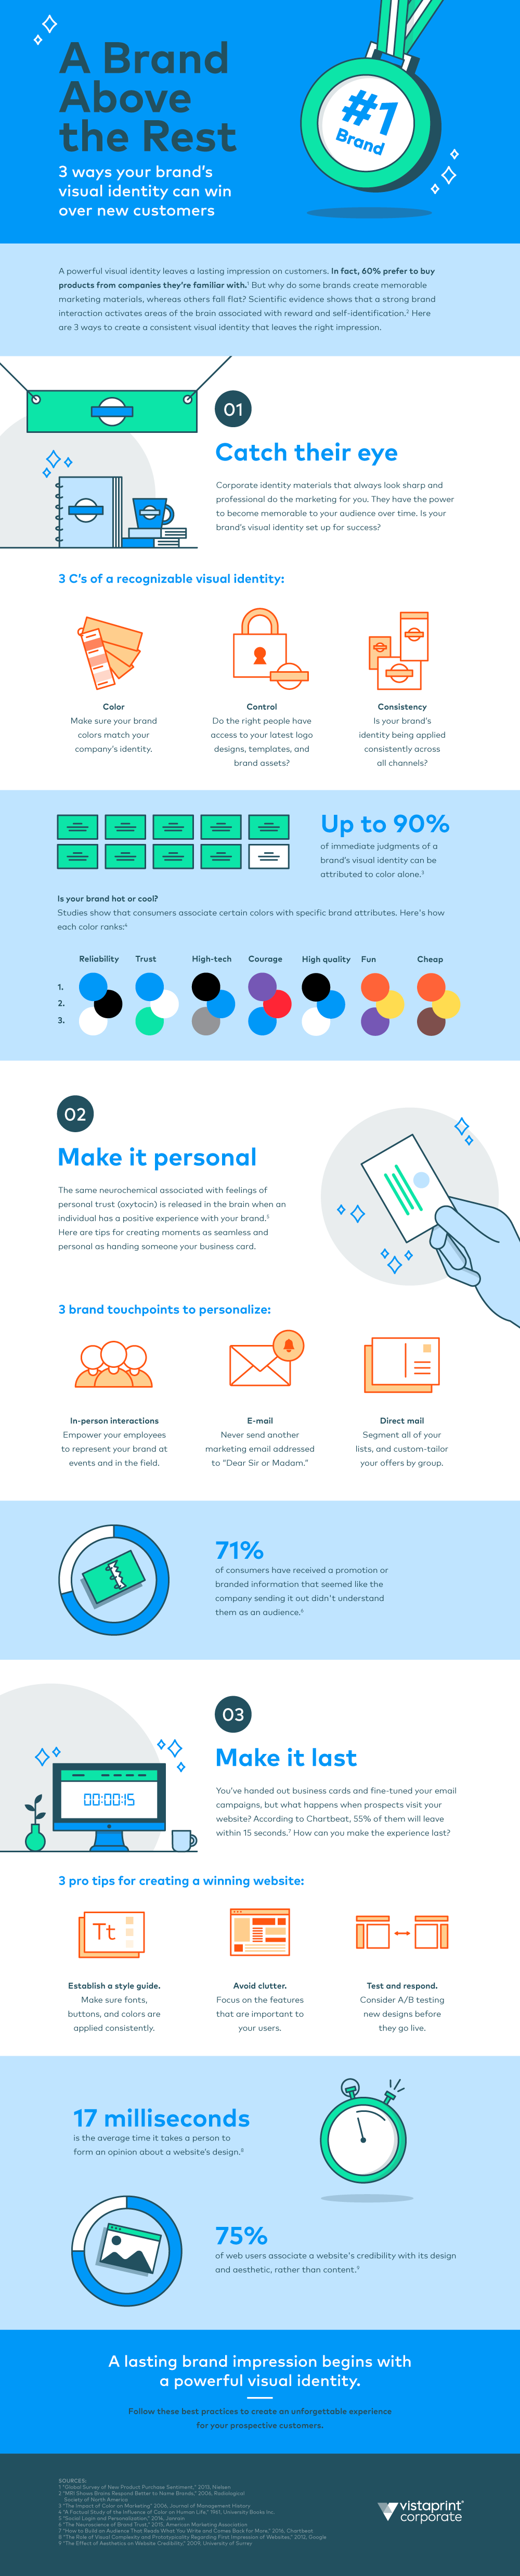 How To Stay On The Top Of Your Customer's Mind? - Infographic